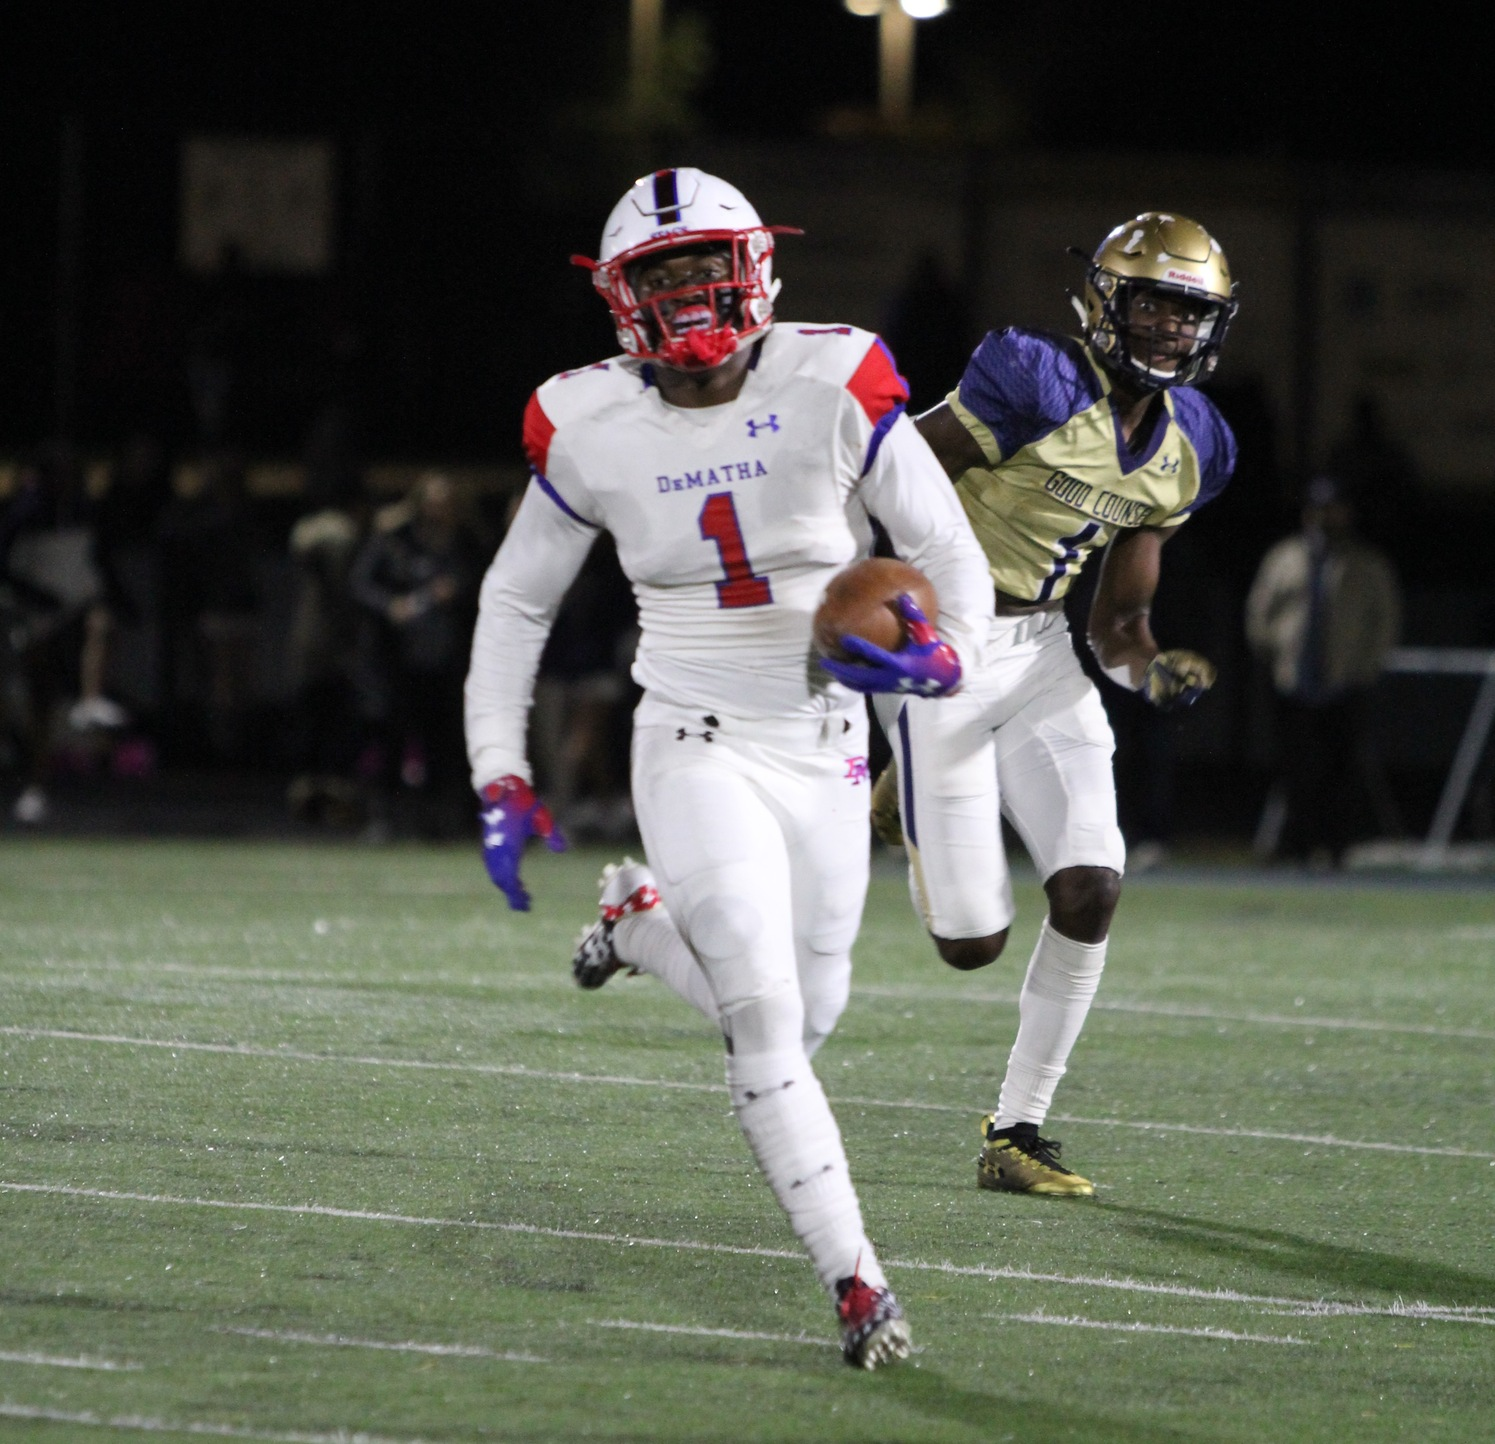 DeMatha Senior DeMarcco Hellams (shown) and Senior Nick Cross were all over the field in the Stags win.